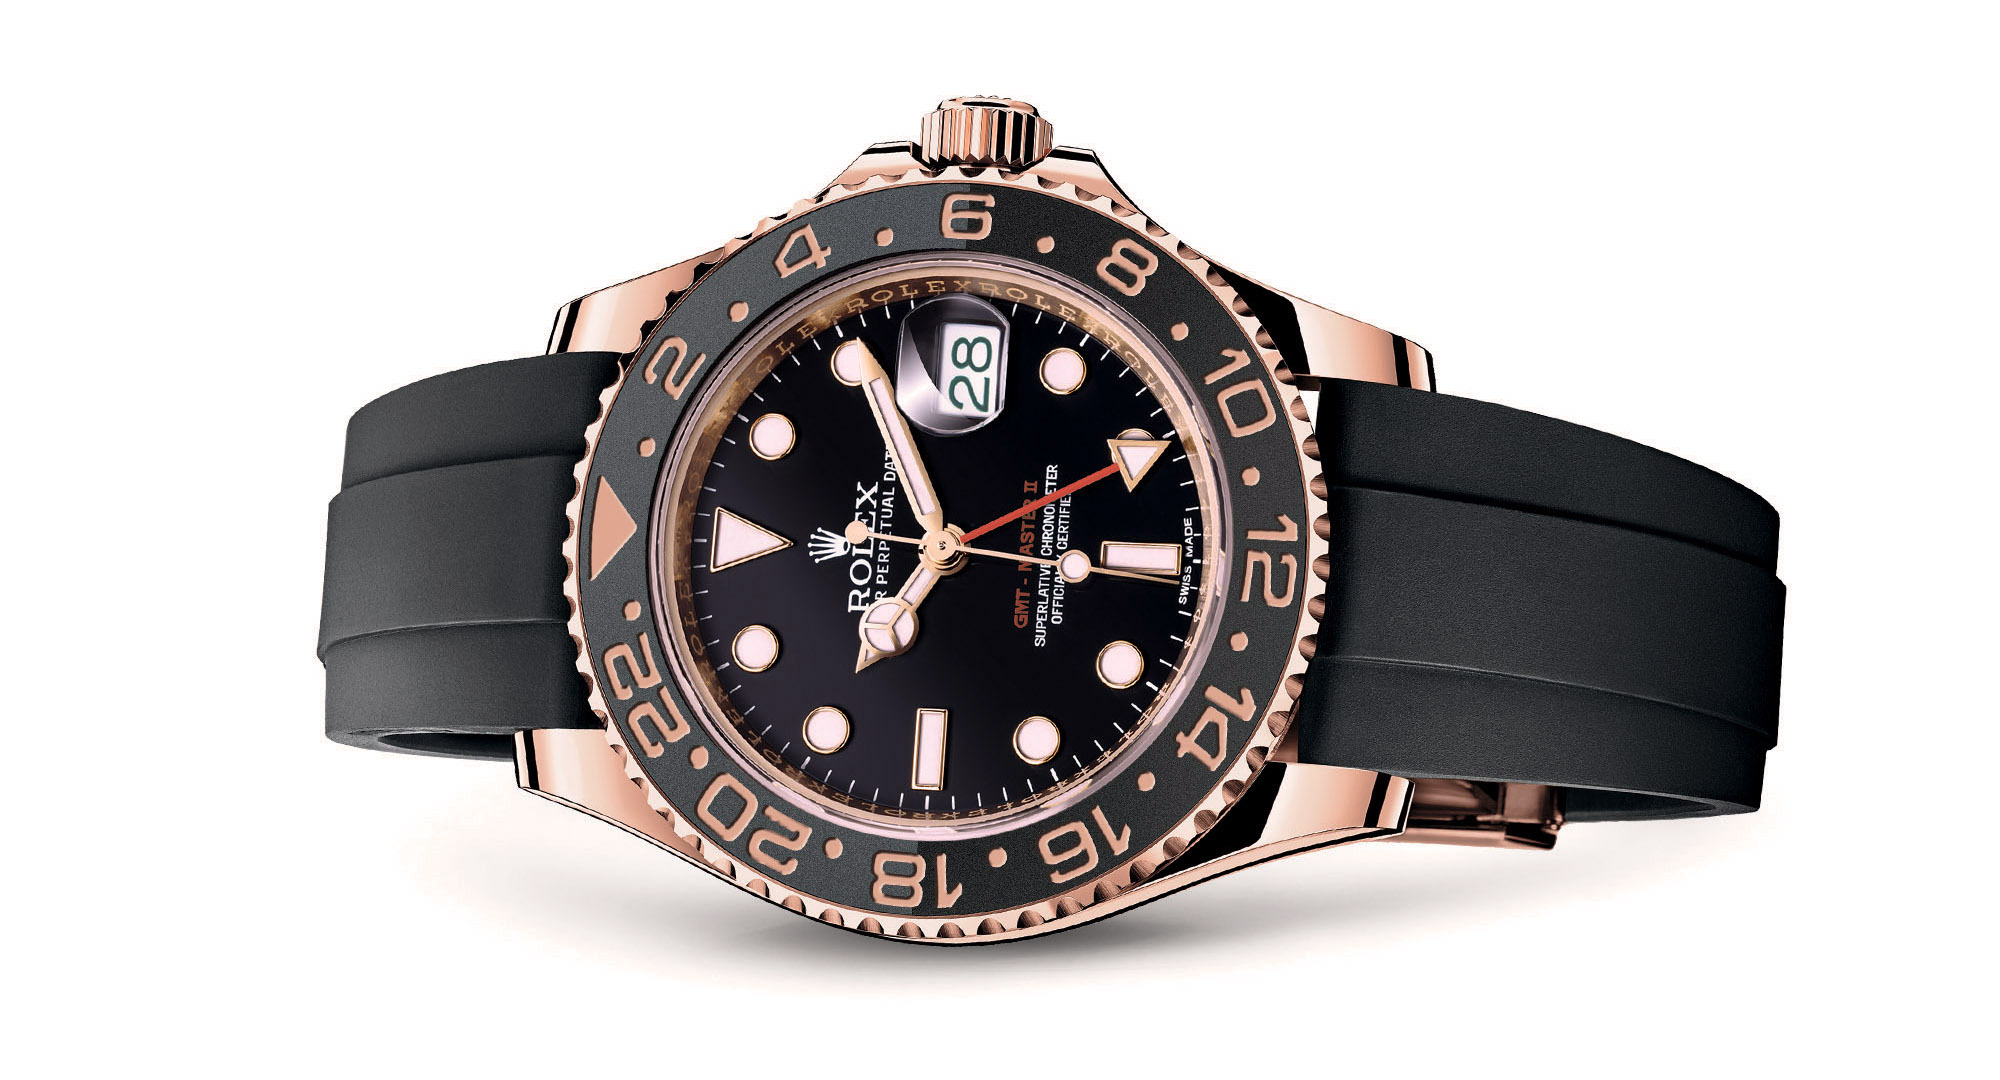 Rolex GMT Master II Pink Gold Rubber Strap - Rolex Baselworld 2017 - Rolex Predictions 2017